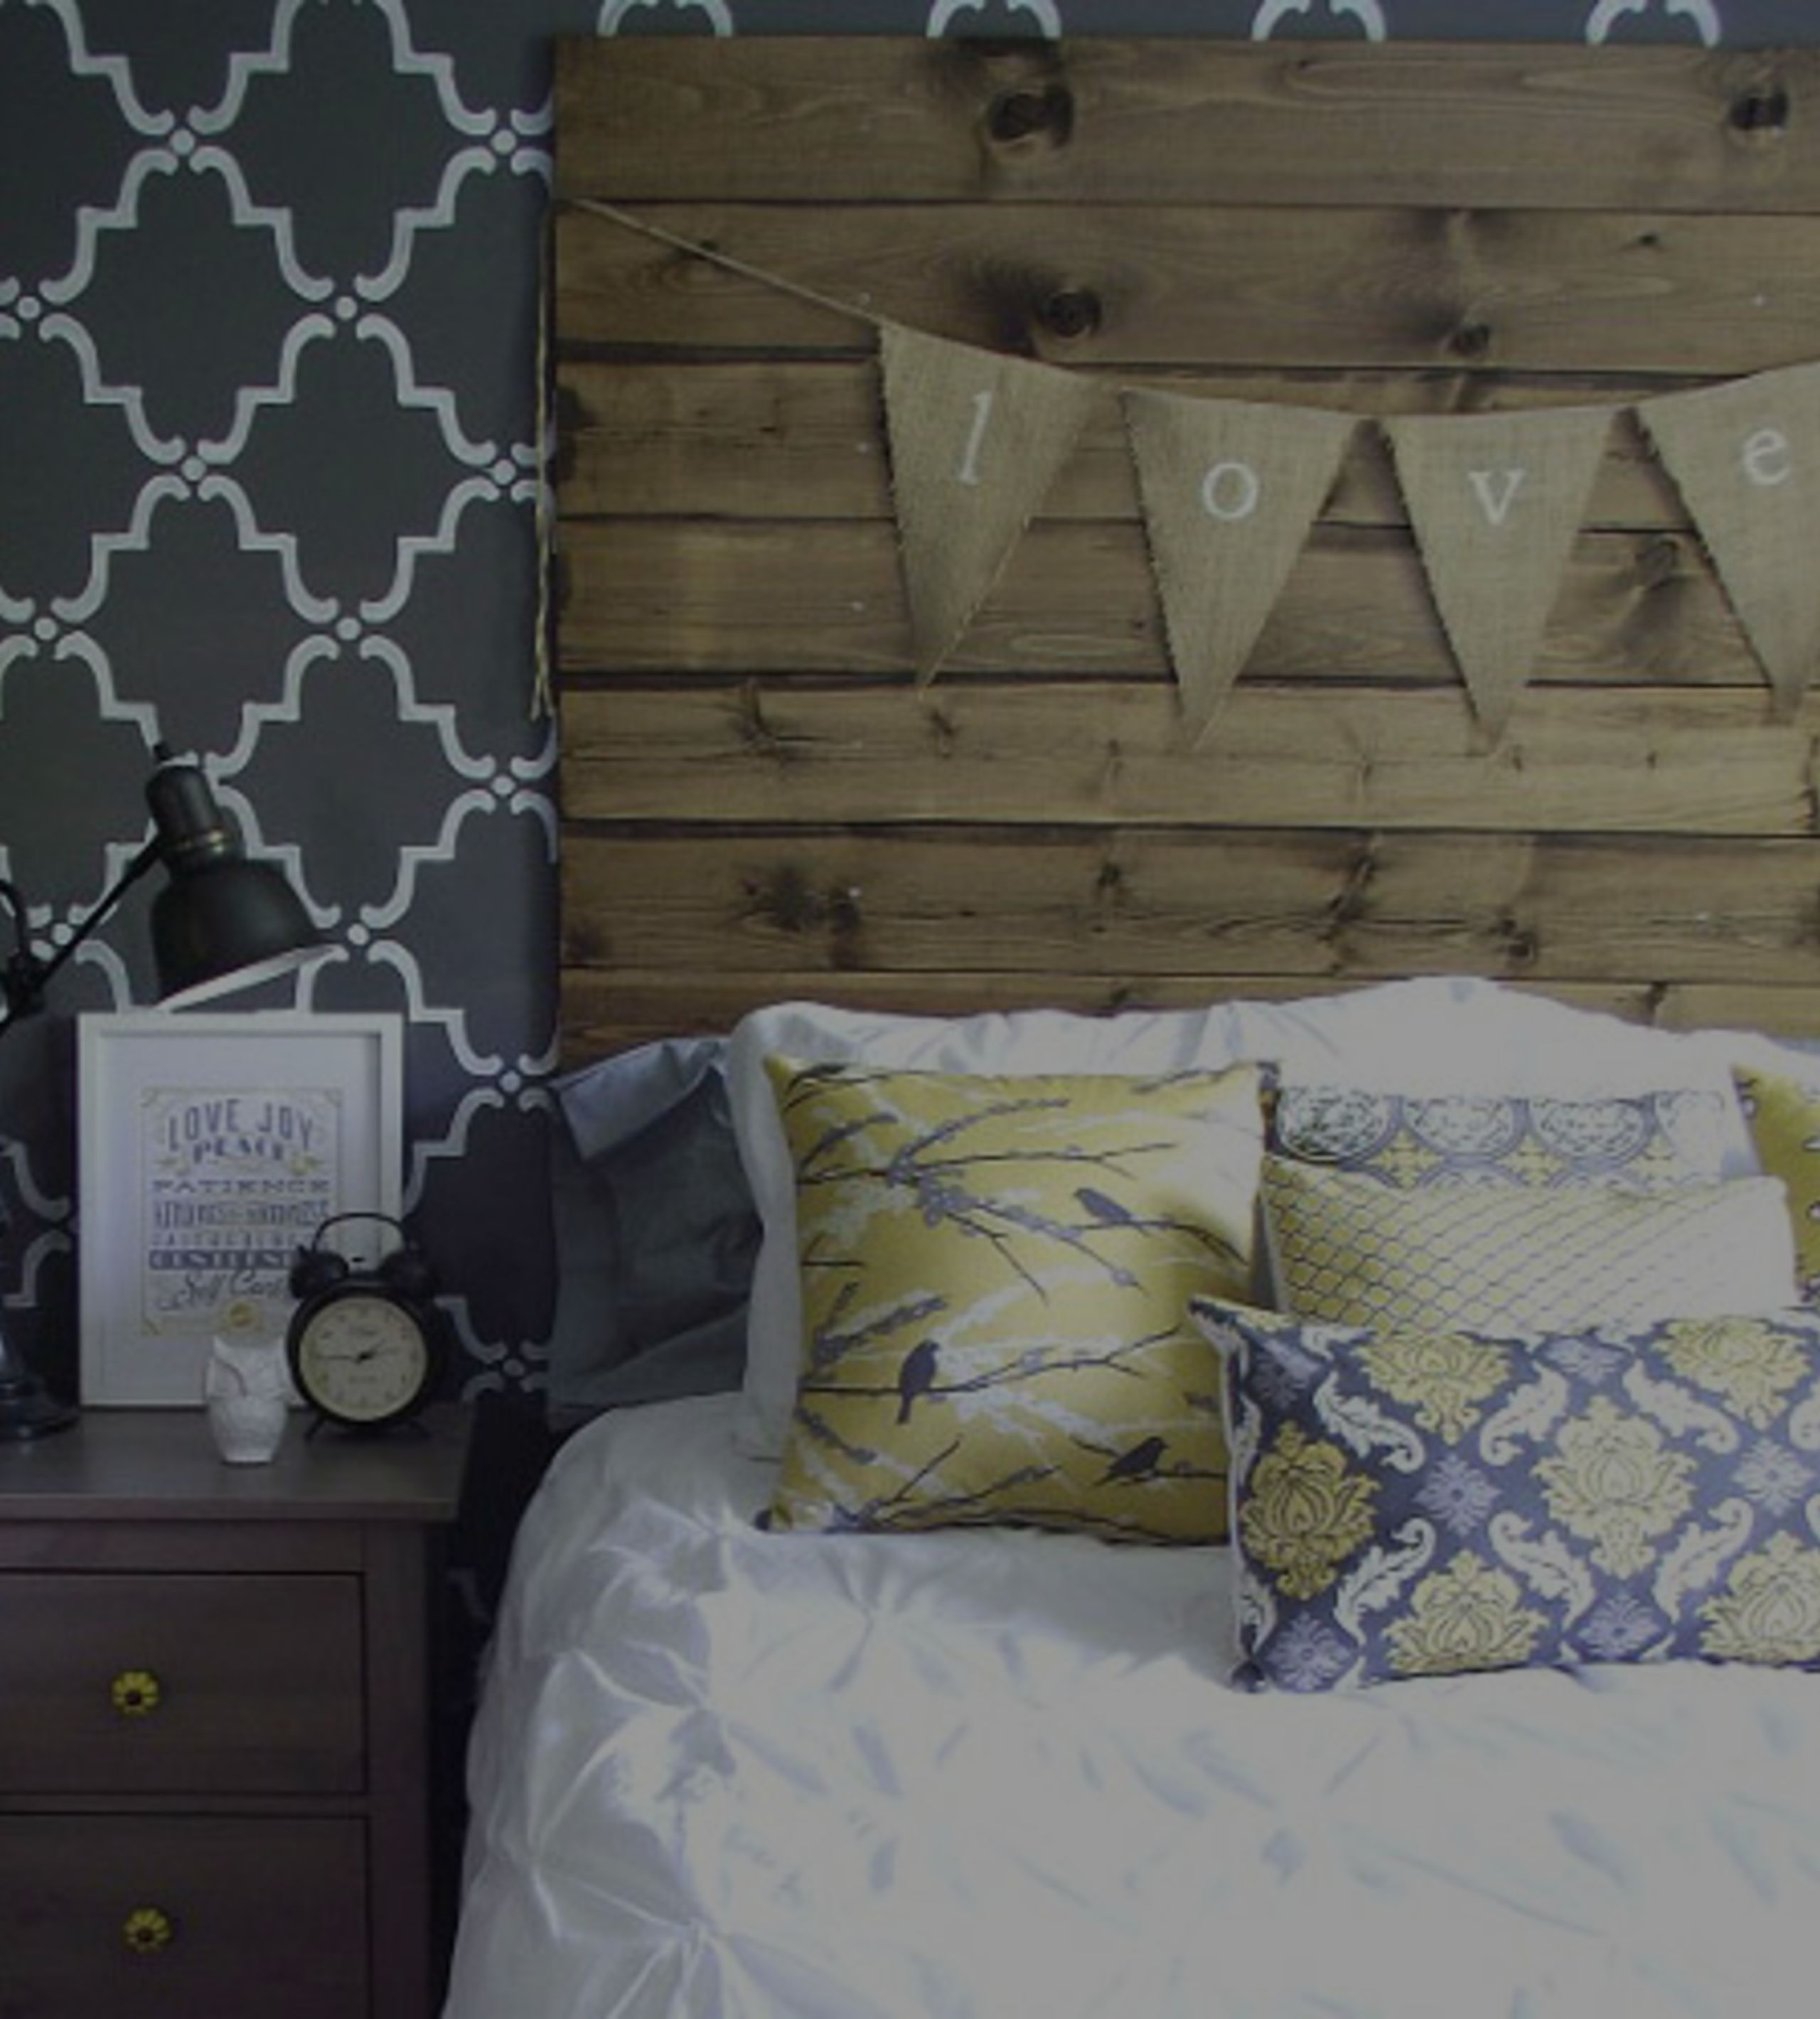 5 Easy Ways to Update a Room